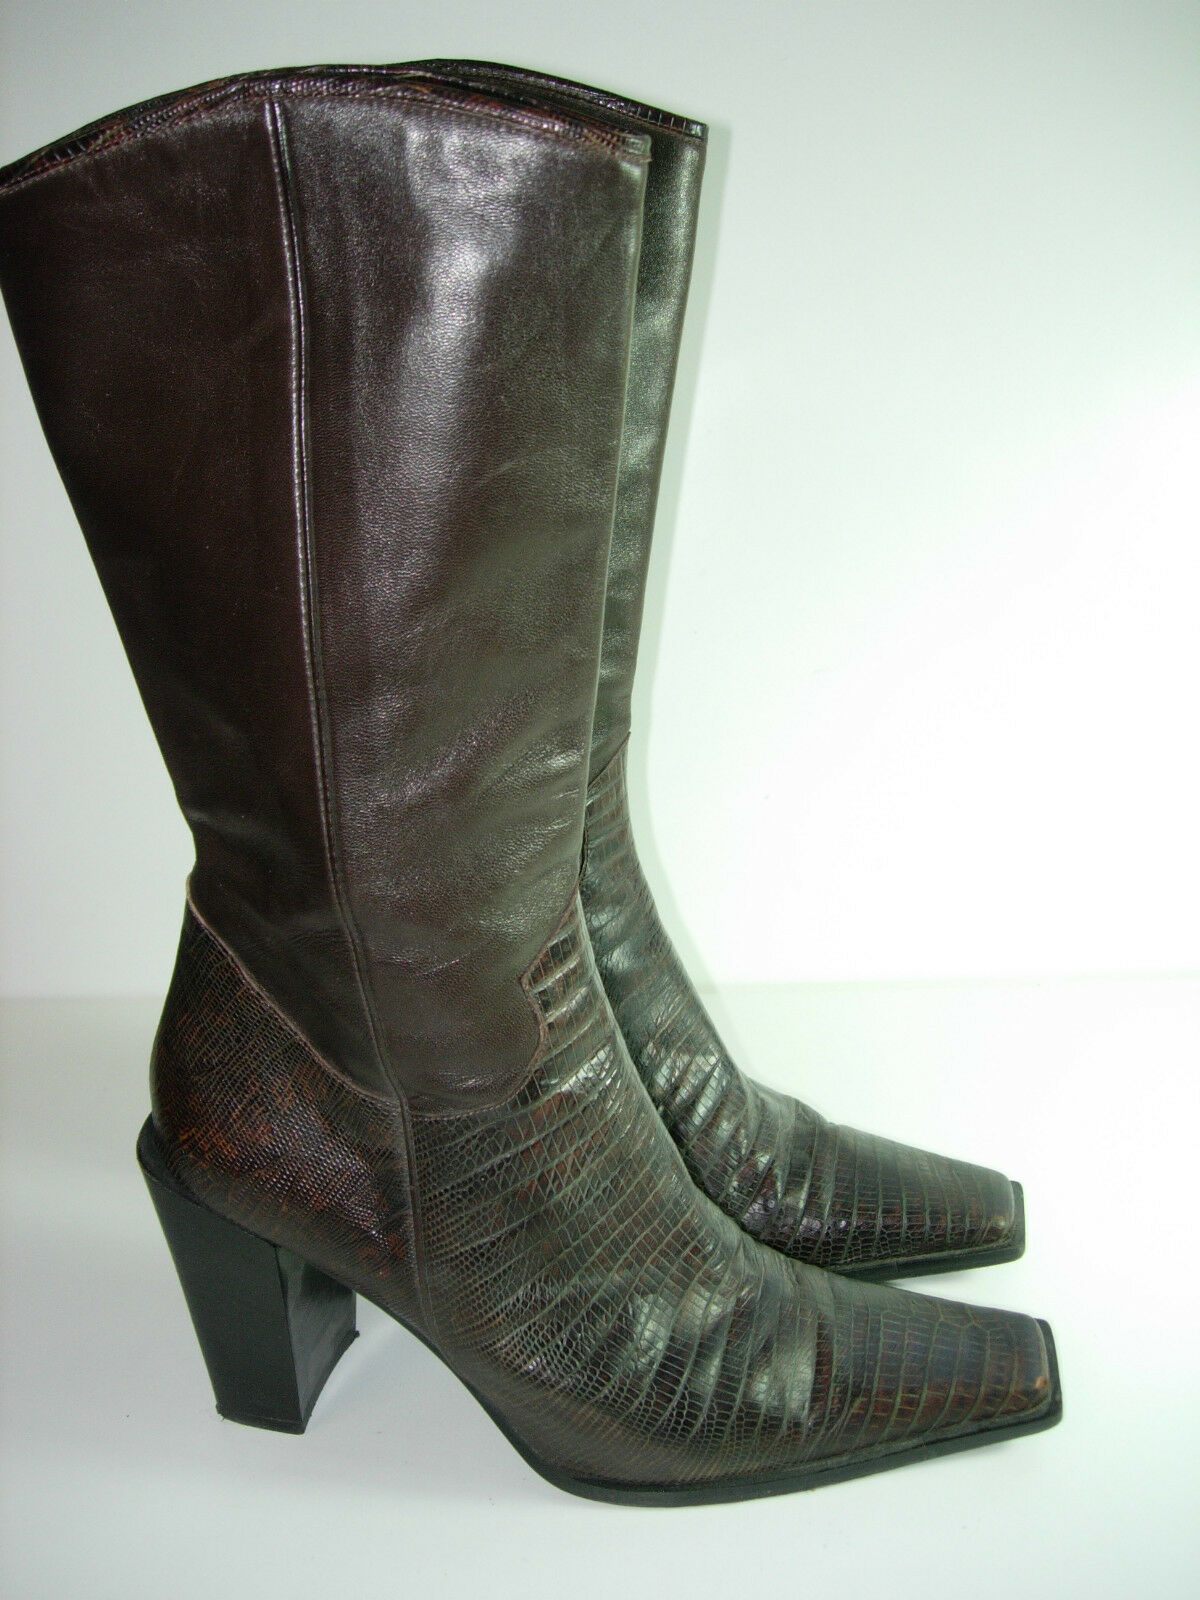 WOMENS BROWN LEATHER MIMA WESTERN COWBOY KNEE BOOTS HEELS  SHOES SIZE 38.5 8 M